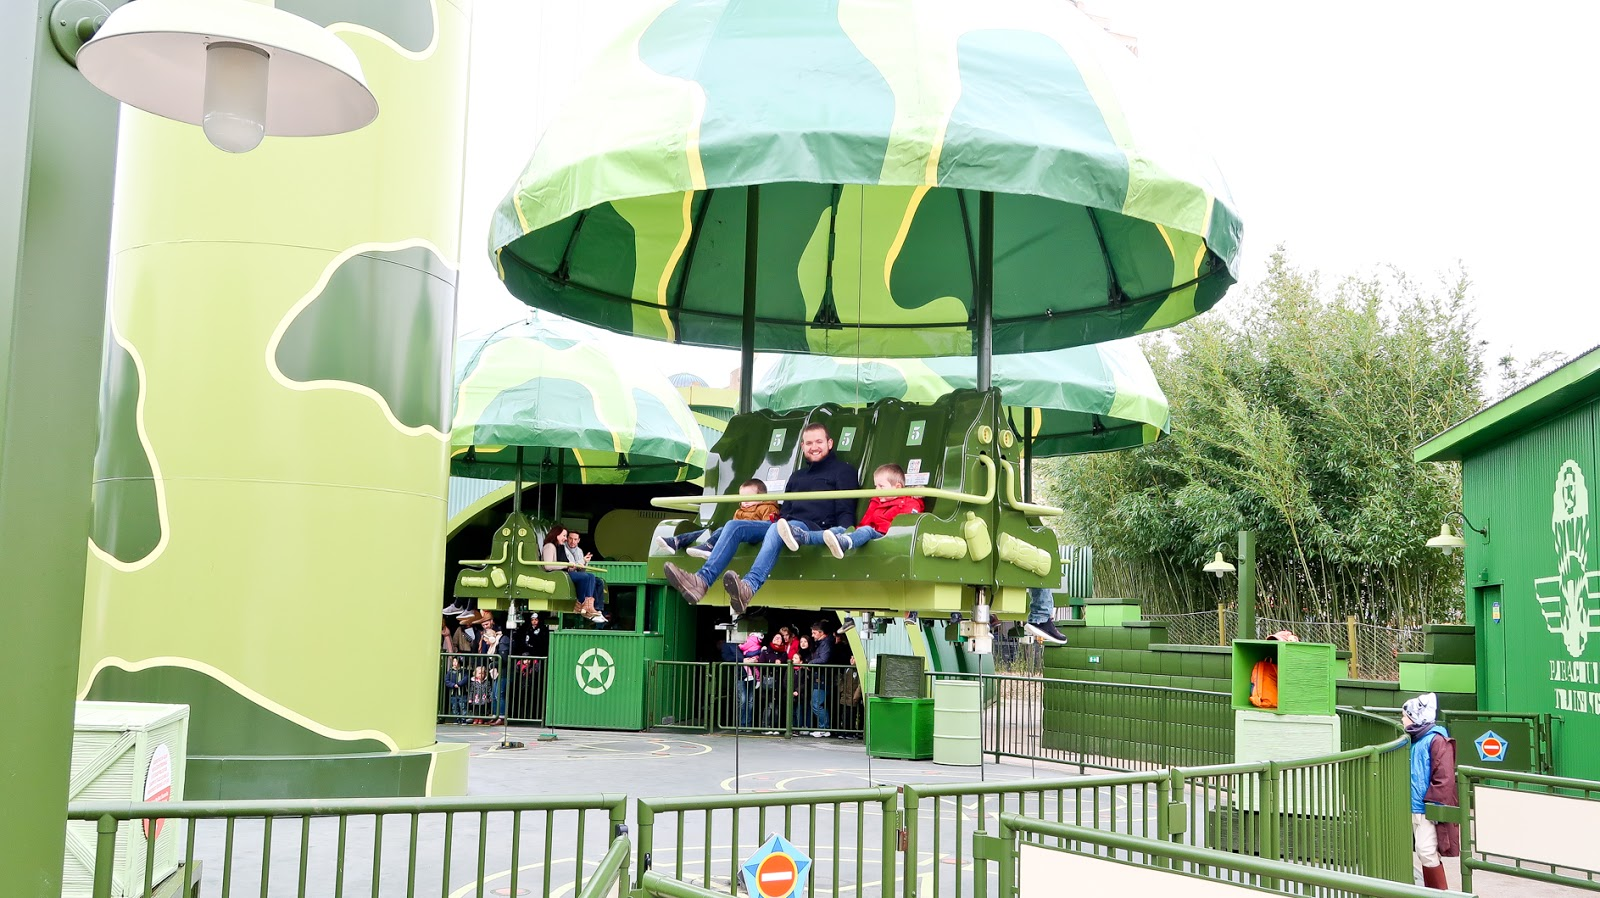 parachute drop disney, first time at disneyland paris, disneyland paris travel blog, disneyland, disneyland paris highlights, disneyland paris must do, vegetarians at disneyland paris,